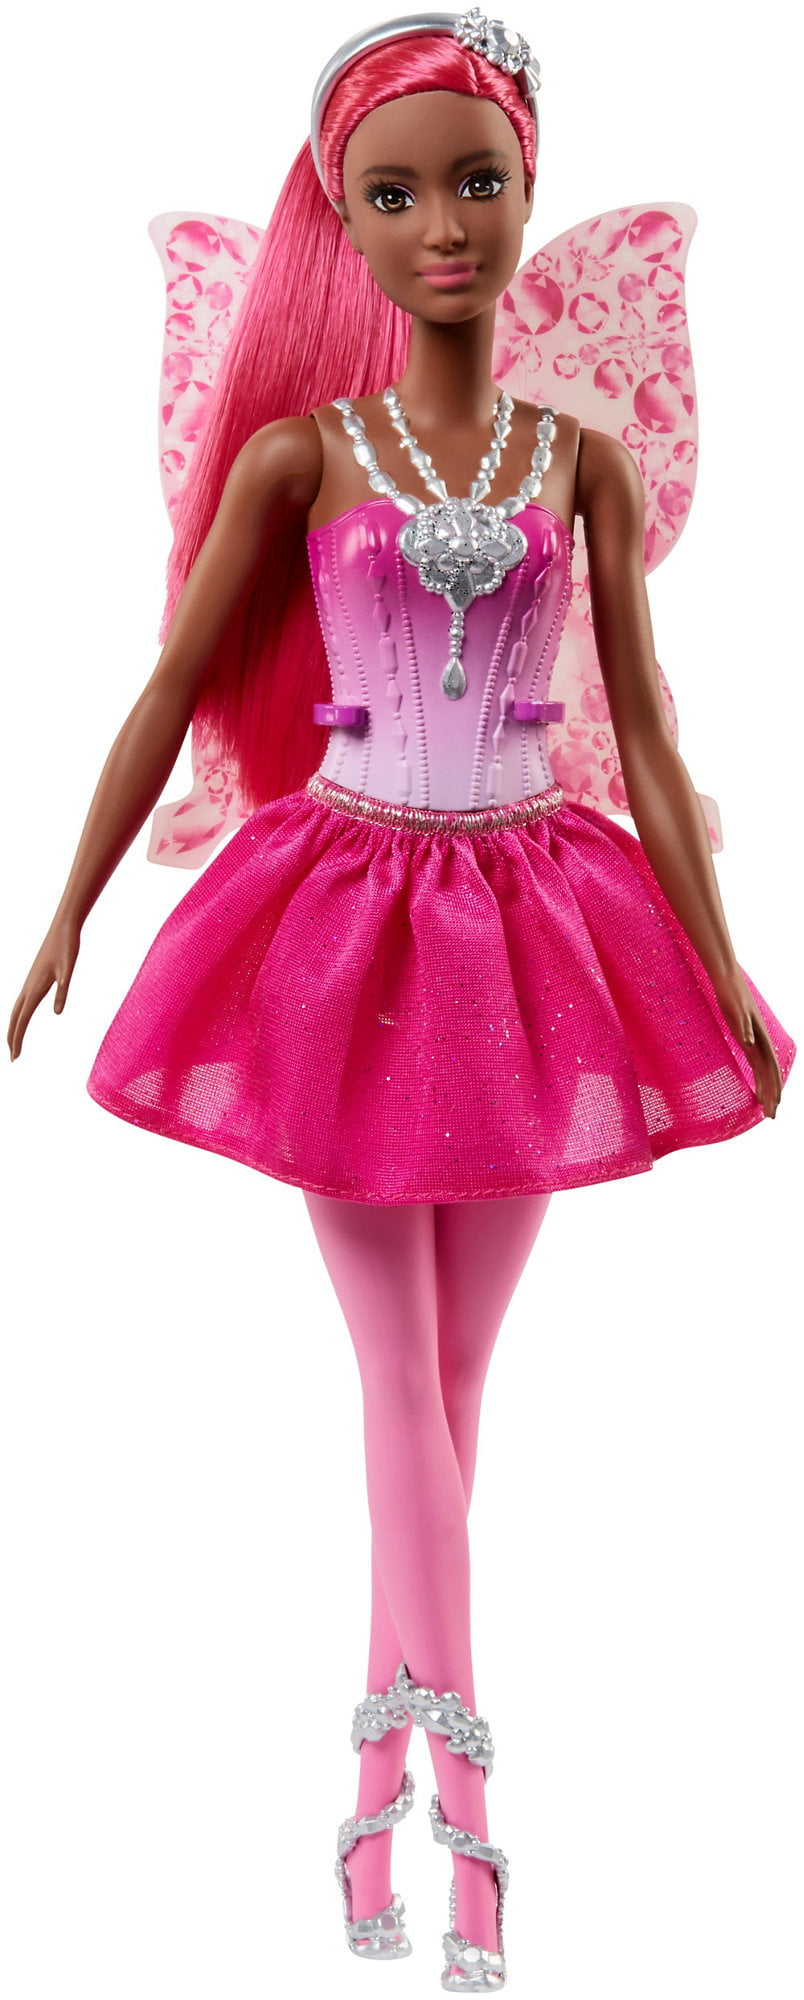 Barbie Dreamtopia Fairy Doll, Red Hair by Mattel